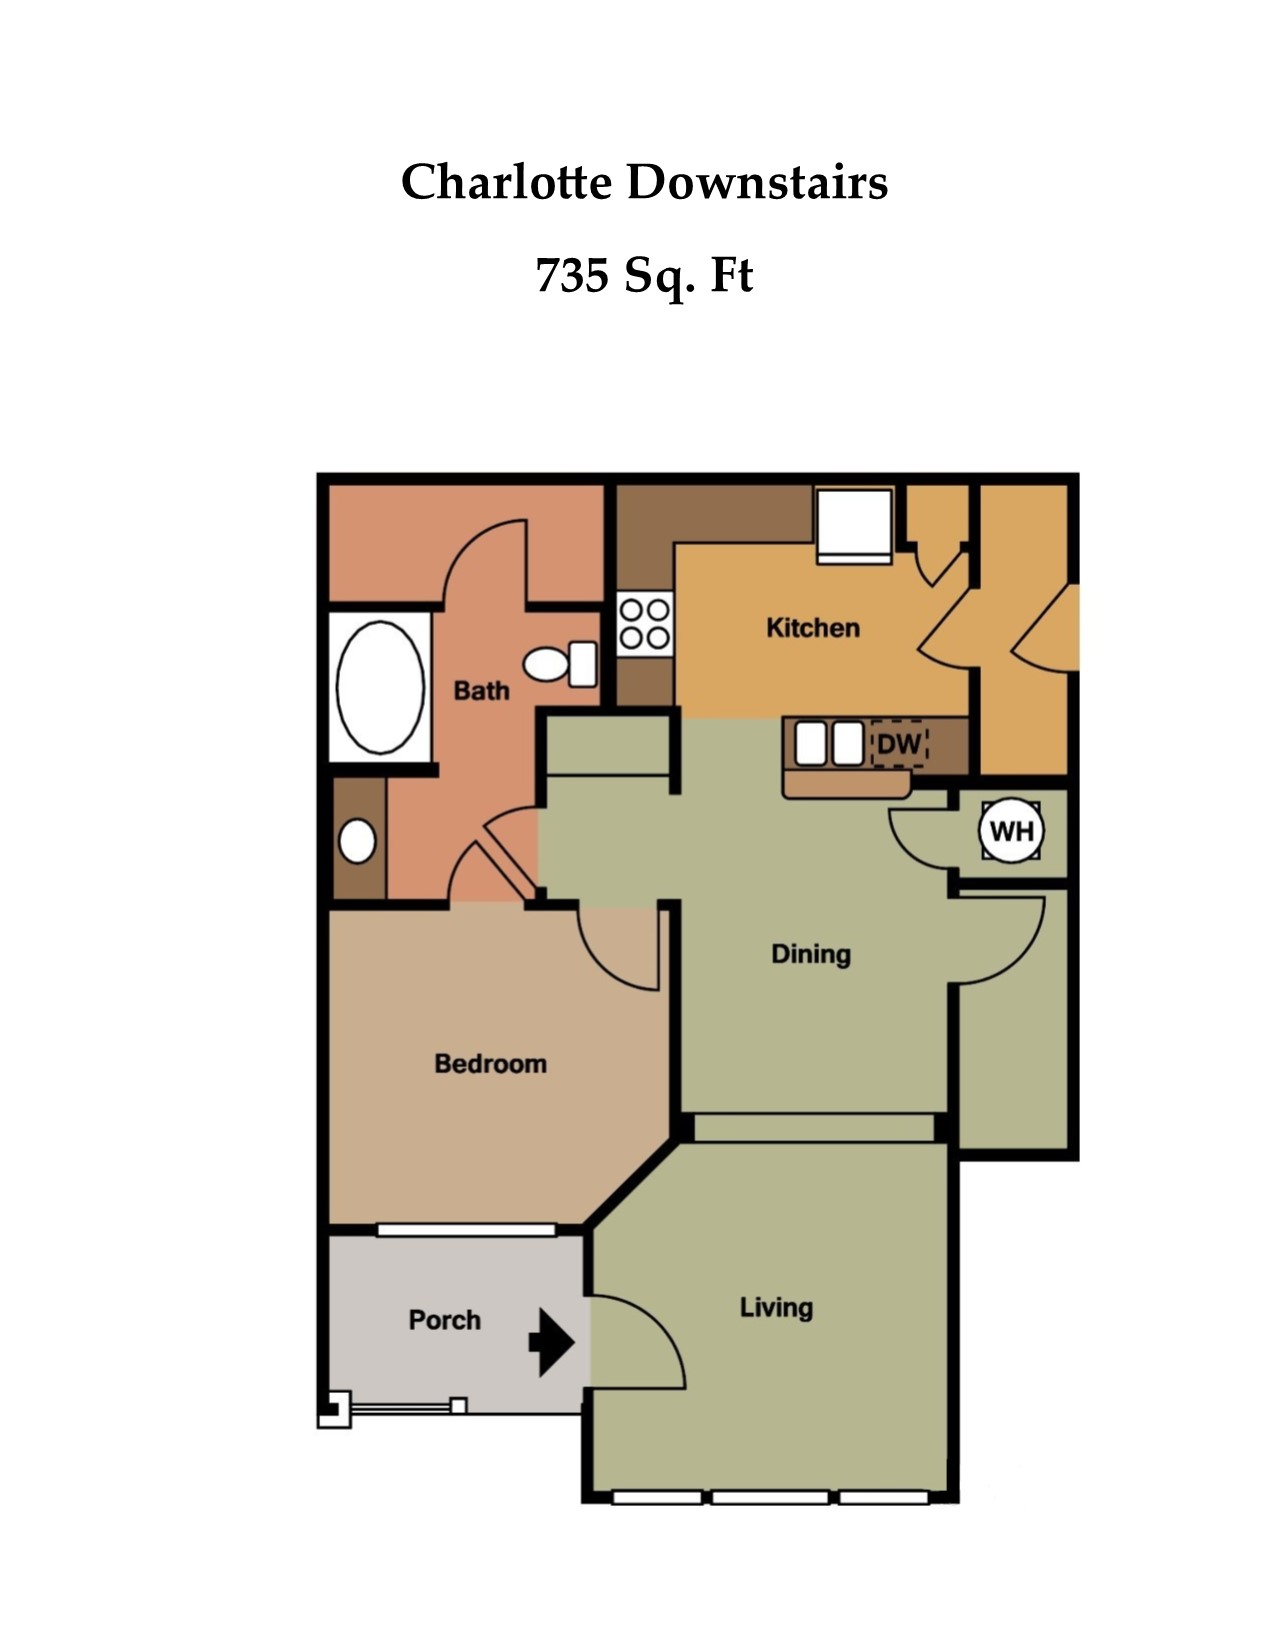 Floorplan - The Charlotte image